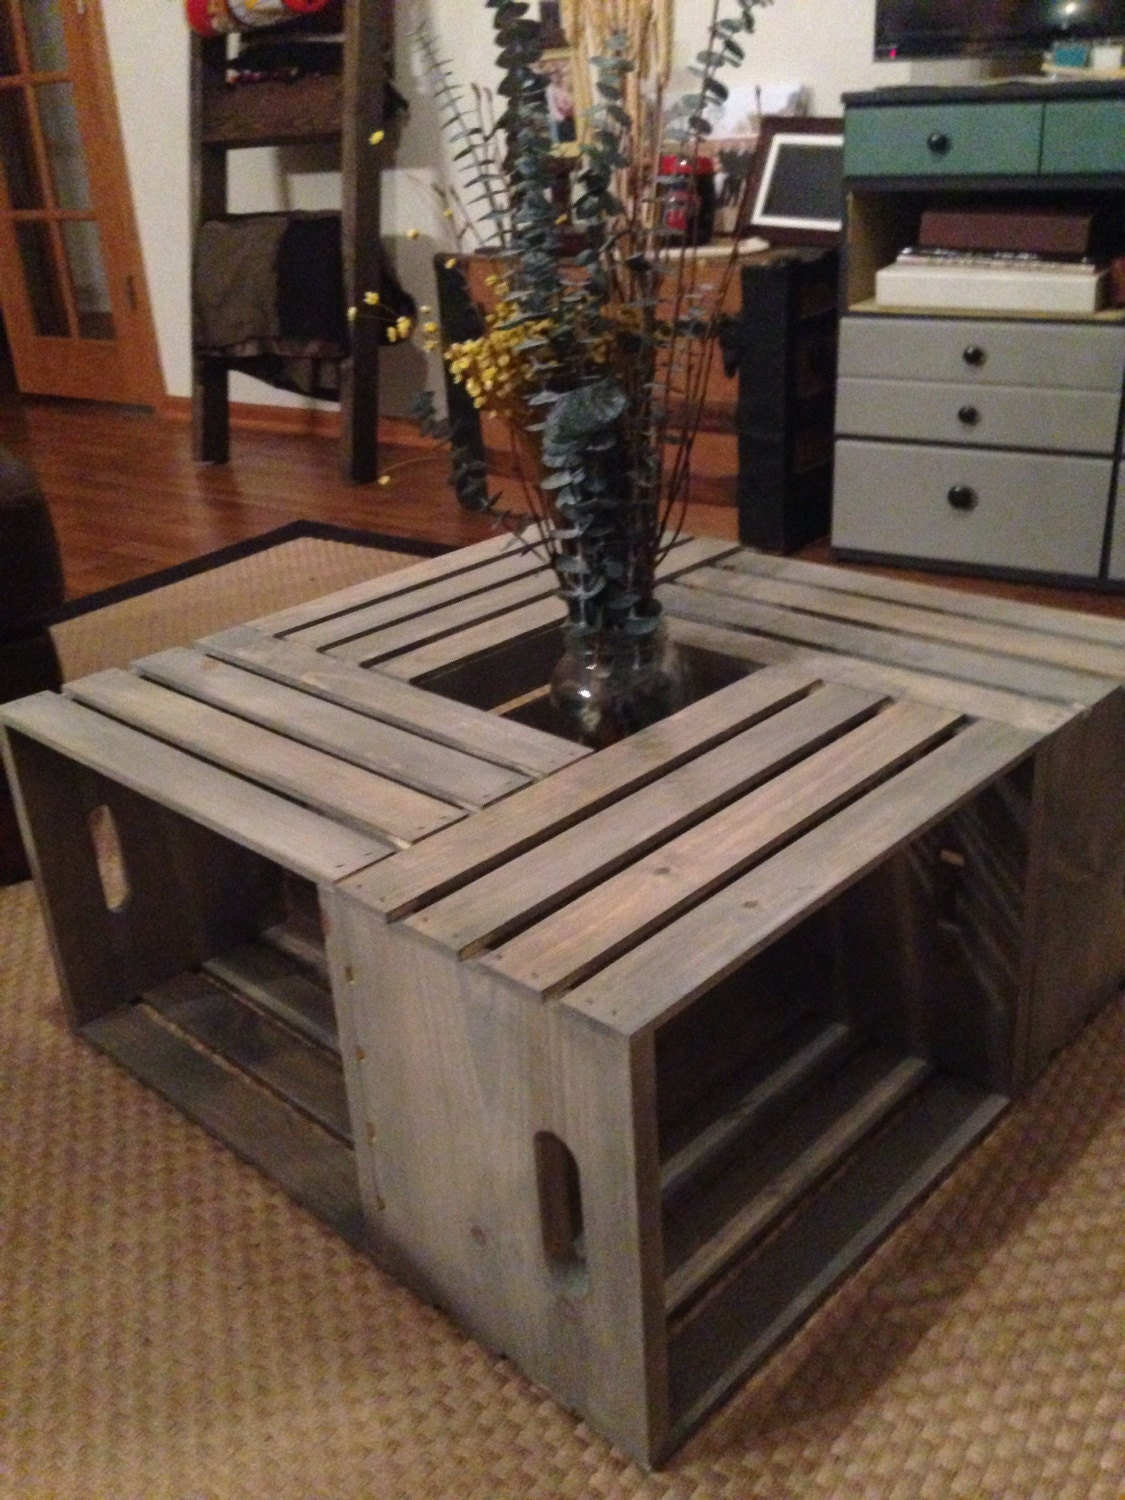 Handmade Belle Wood Wine Crate Coffee Table- Cottage Cape Cod Style - Crate Coffee Table Etsy